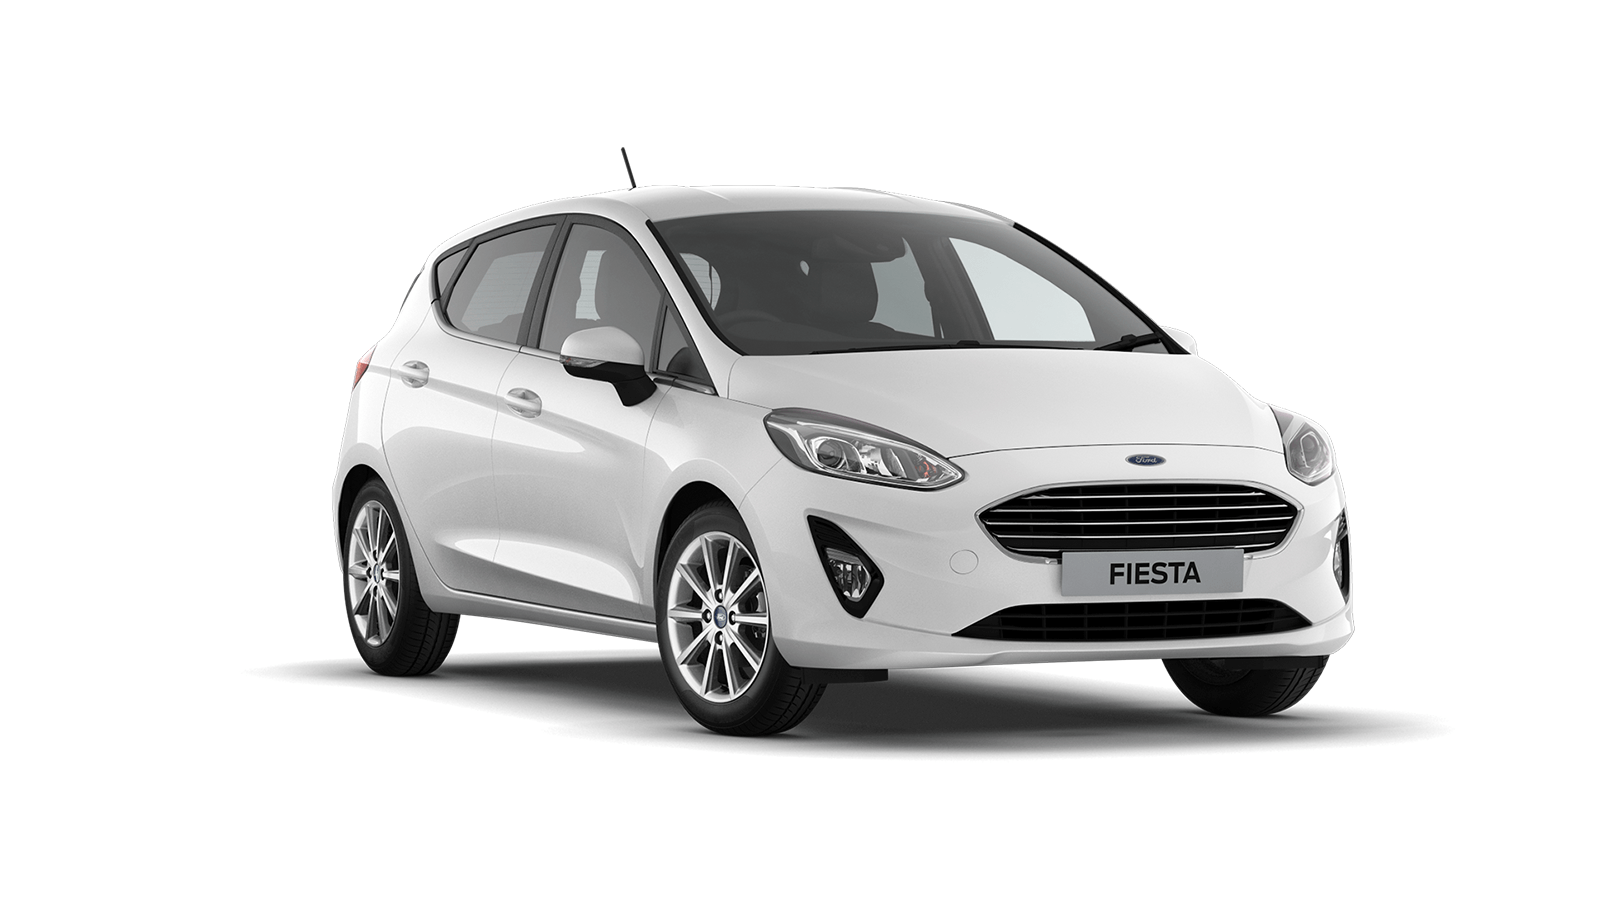 https://www.dealerinternet.co.uk/images/FIESTA%20B299/2019/5%20Door/Titanium/FROZEN-WHITE.png